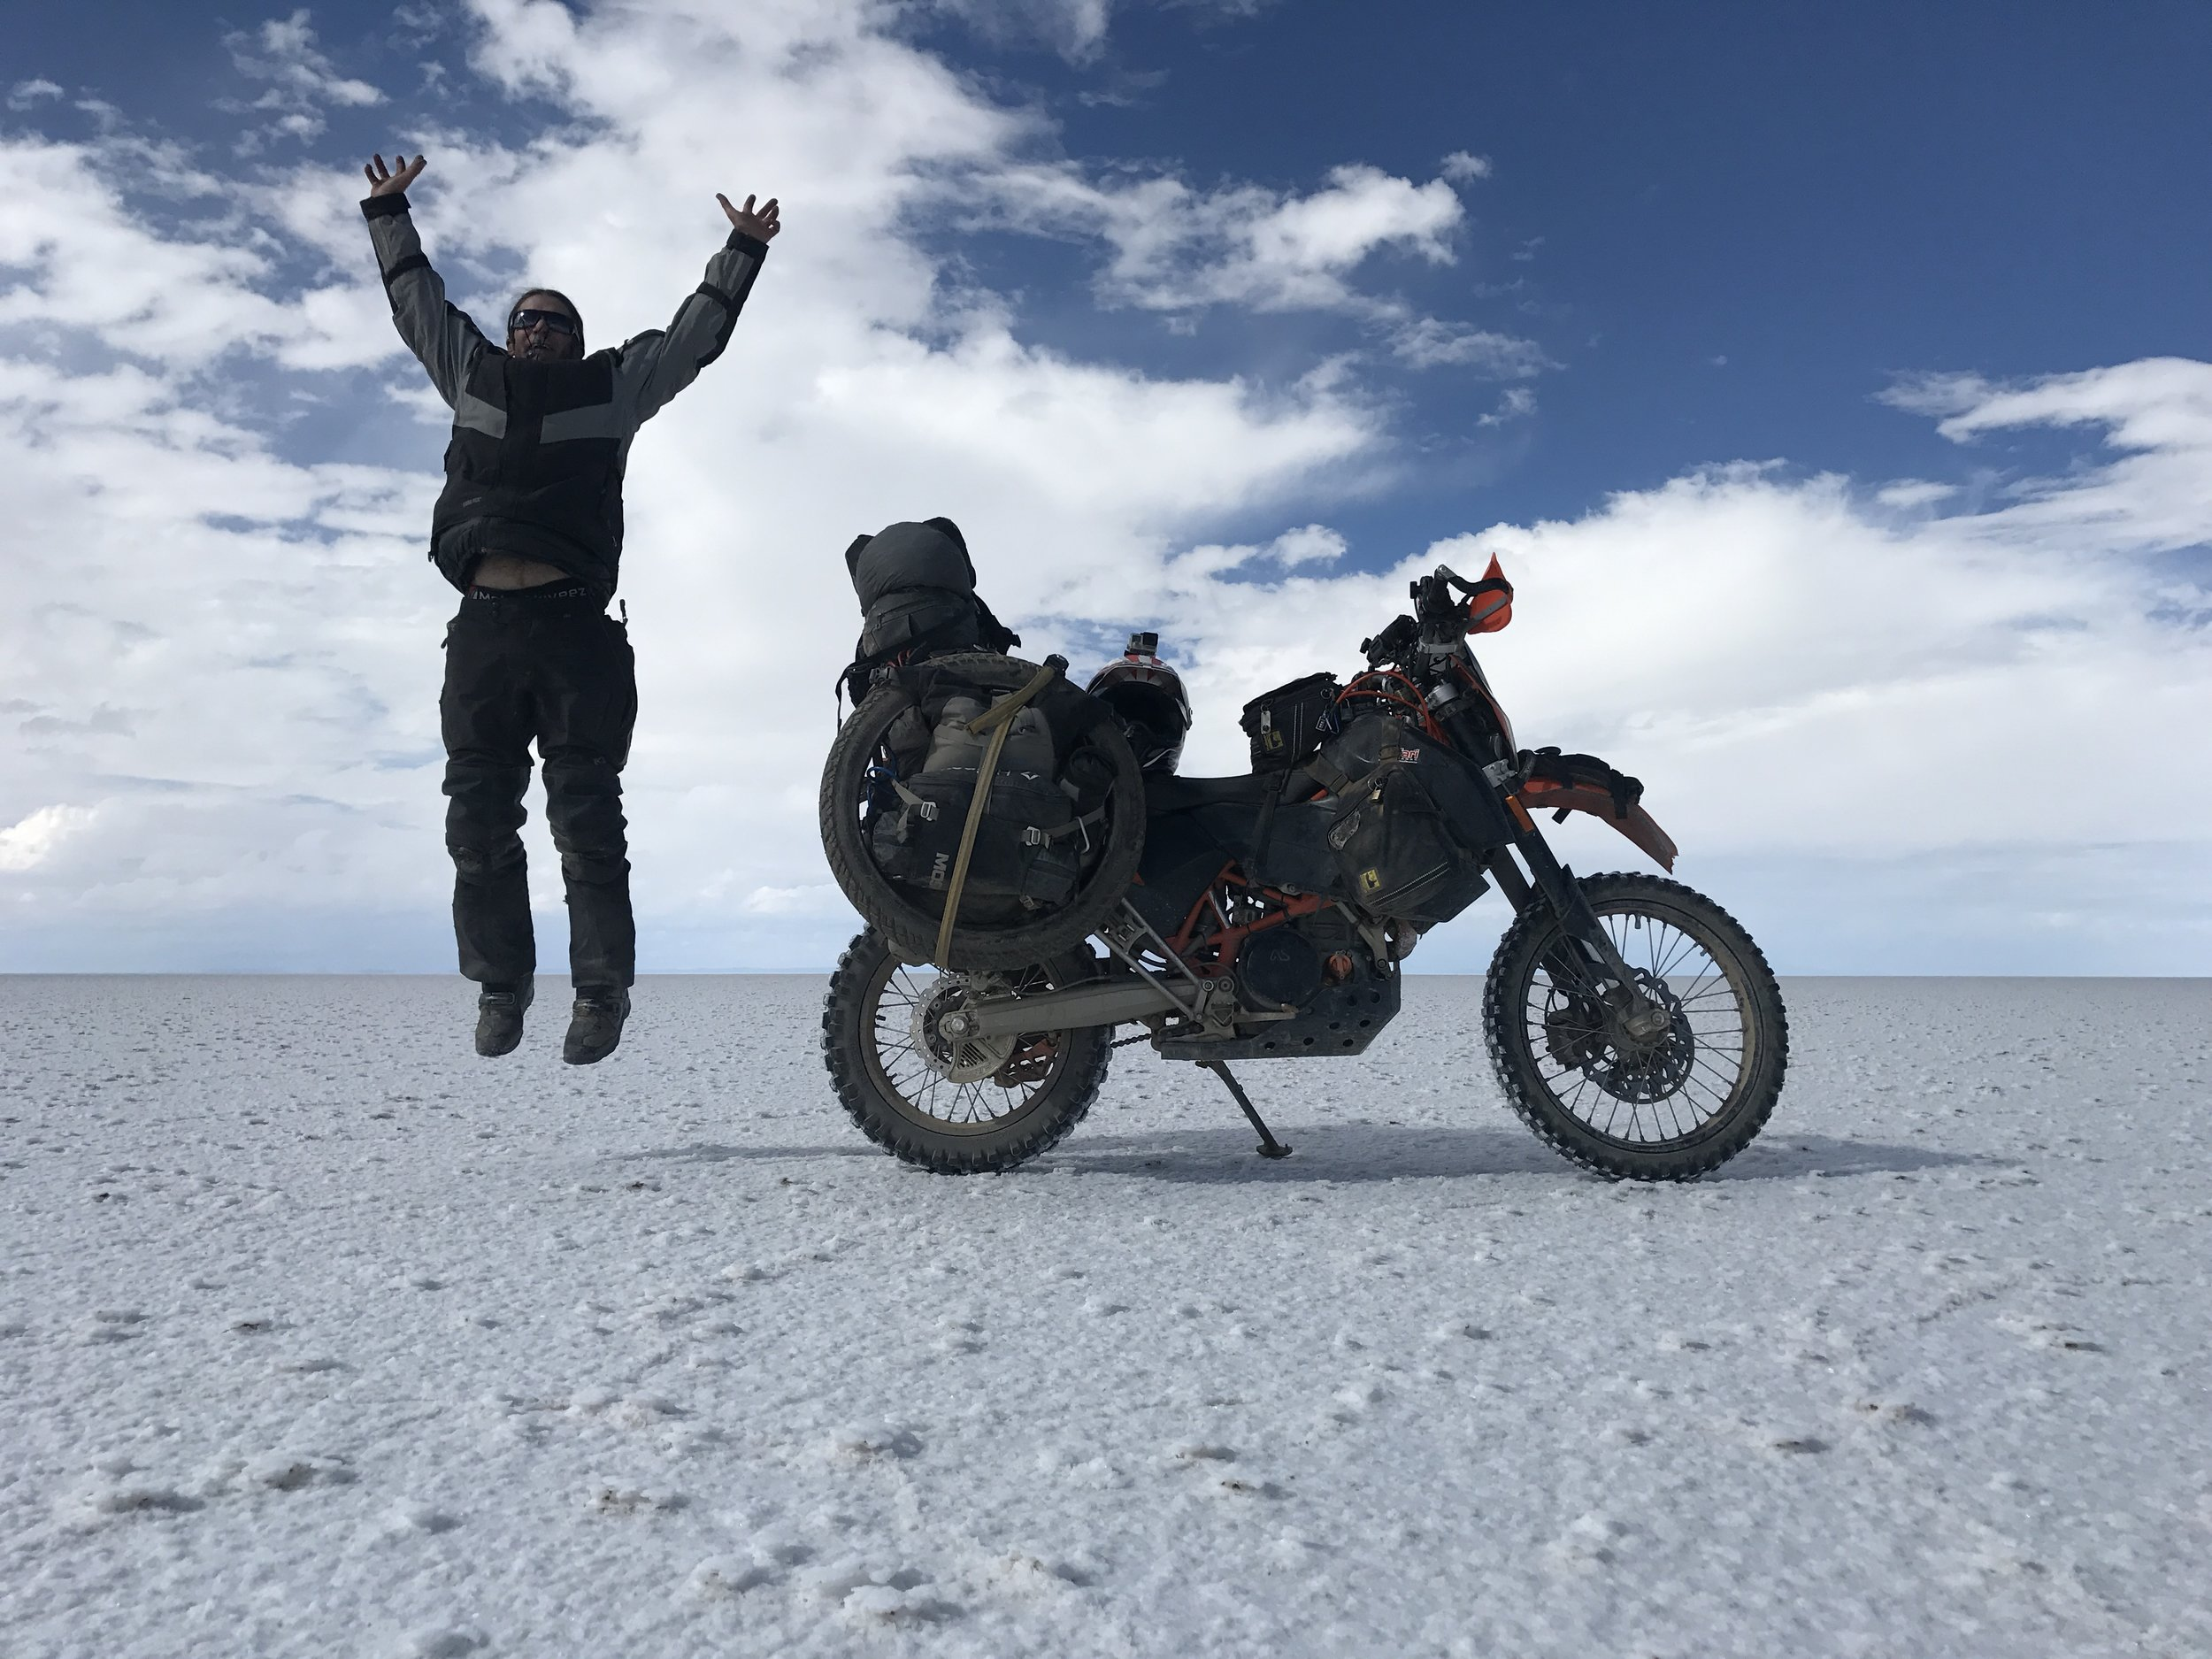 11,000+ square kilometers of salt flats on the famous Salar de Uyuni in Bolivia. Epic! I camped out in the middle of this sucker and rode 78 miles to get across it to my exit. Amazing Place!